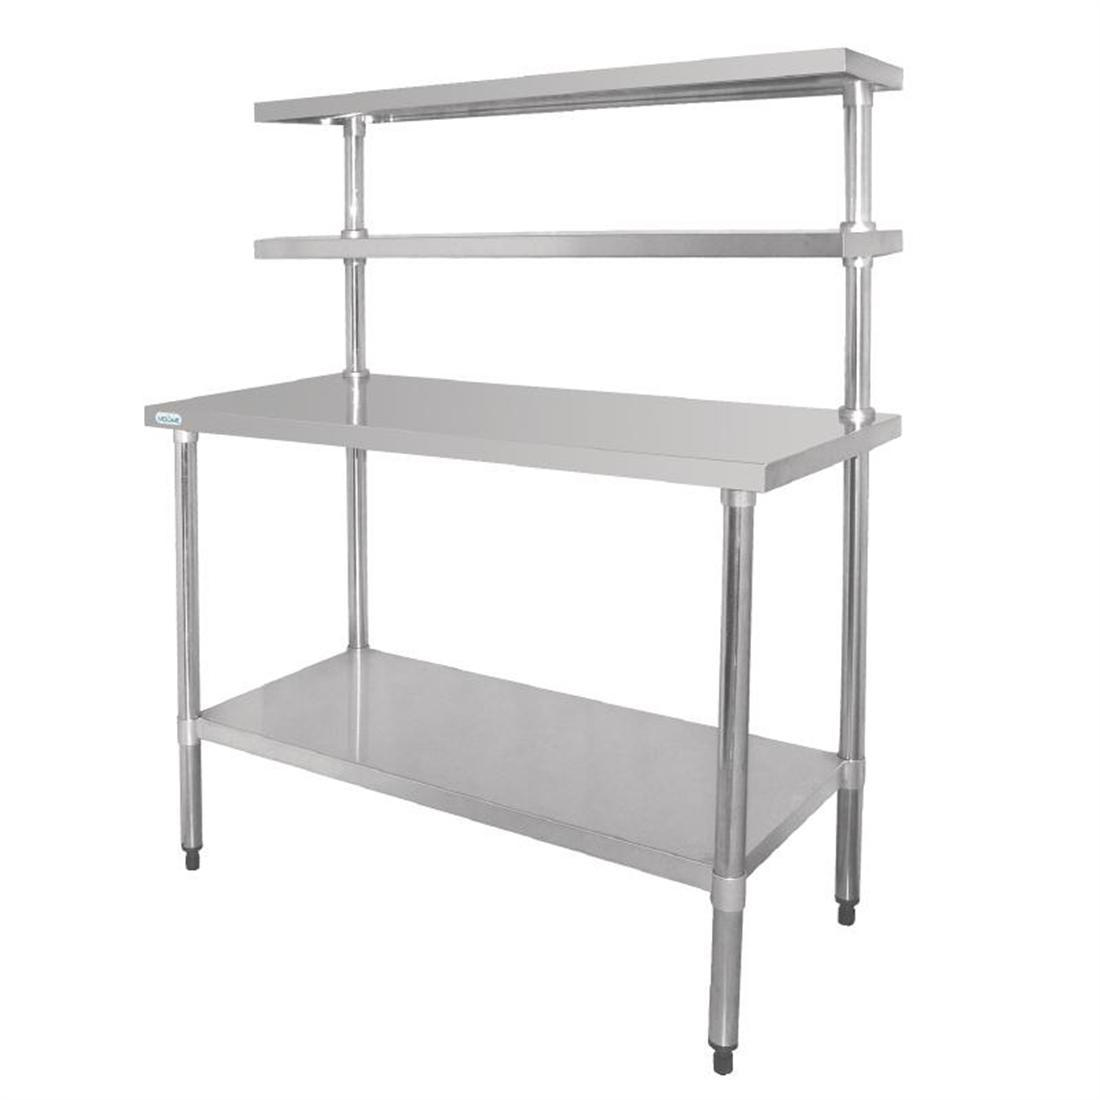 Vogue Stainless Steel Prep Station 1200x600mm - Each - CC359